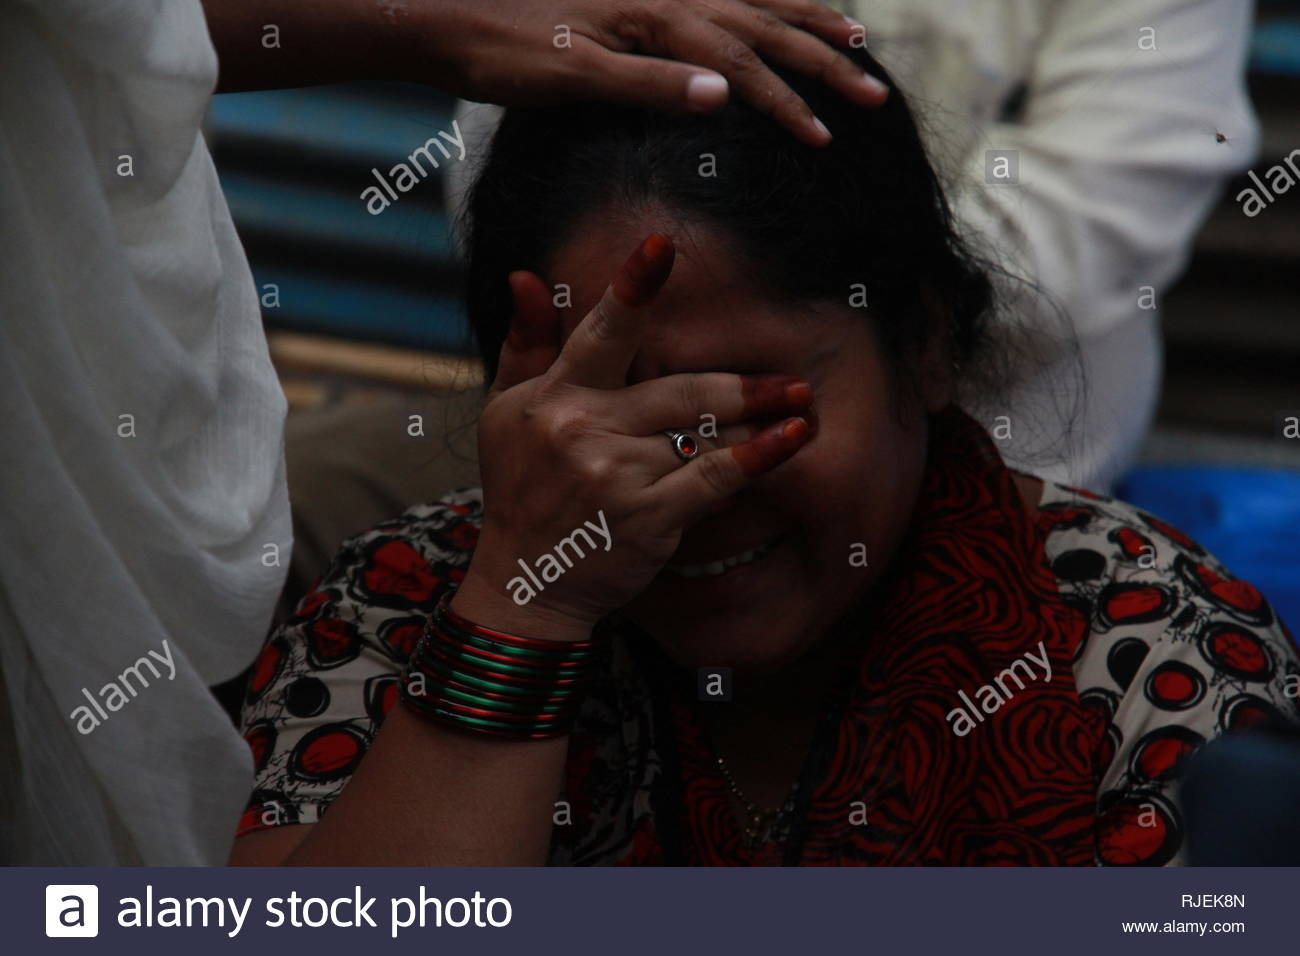 Relatives of the victims mourns the death, in Thane, Mumbai, India on June 21, 2013. The 35-year-old Shakuntala building, situated at Bazarpeth in Mumbra of Thane district collapsed after midnight. At least ten people are feared dead and several people are injured.(Ramesh Nair/ SOLARIS IMAGES) at least 14 injured. (Ramesh Nair/ SOLARIS IMAGES) - Stock Image